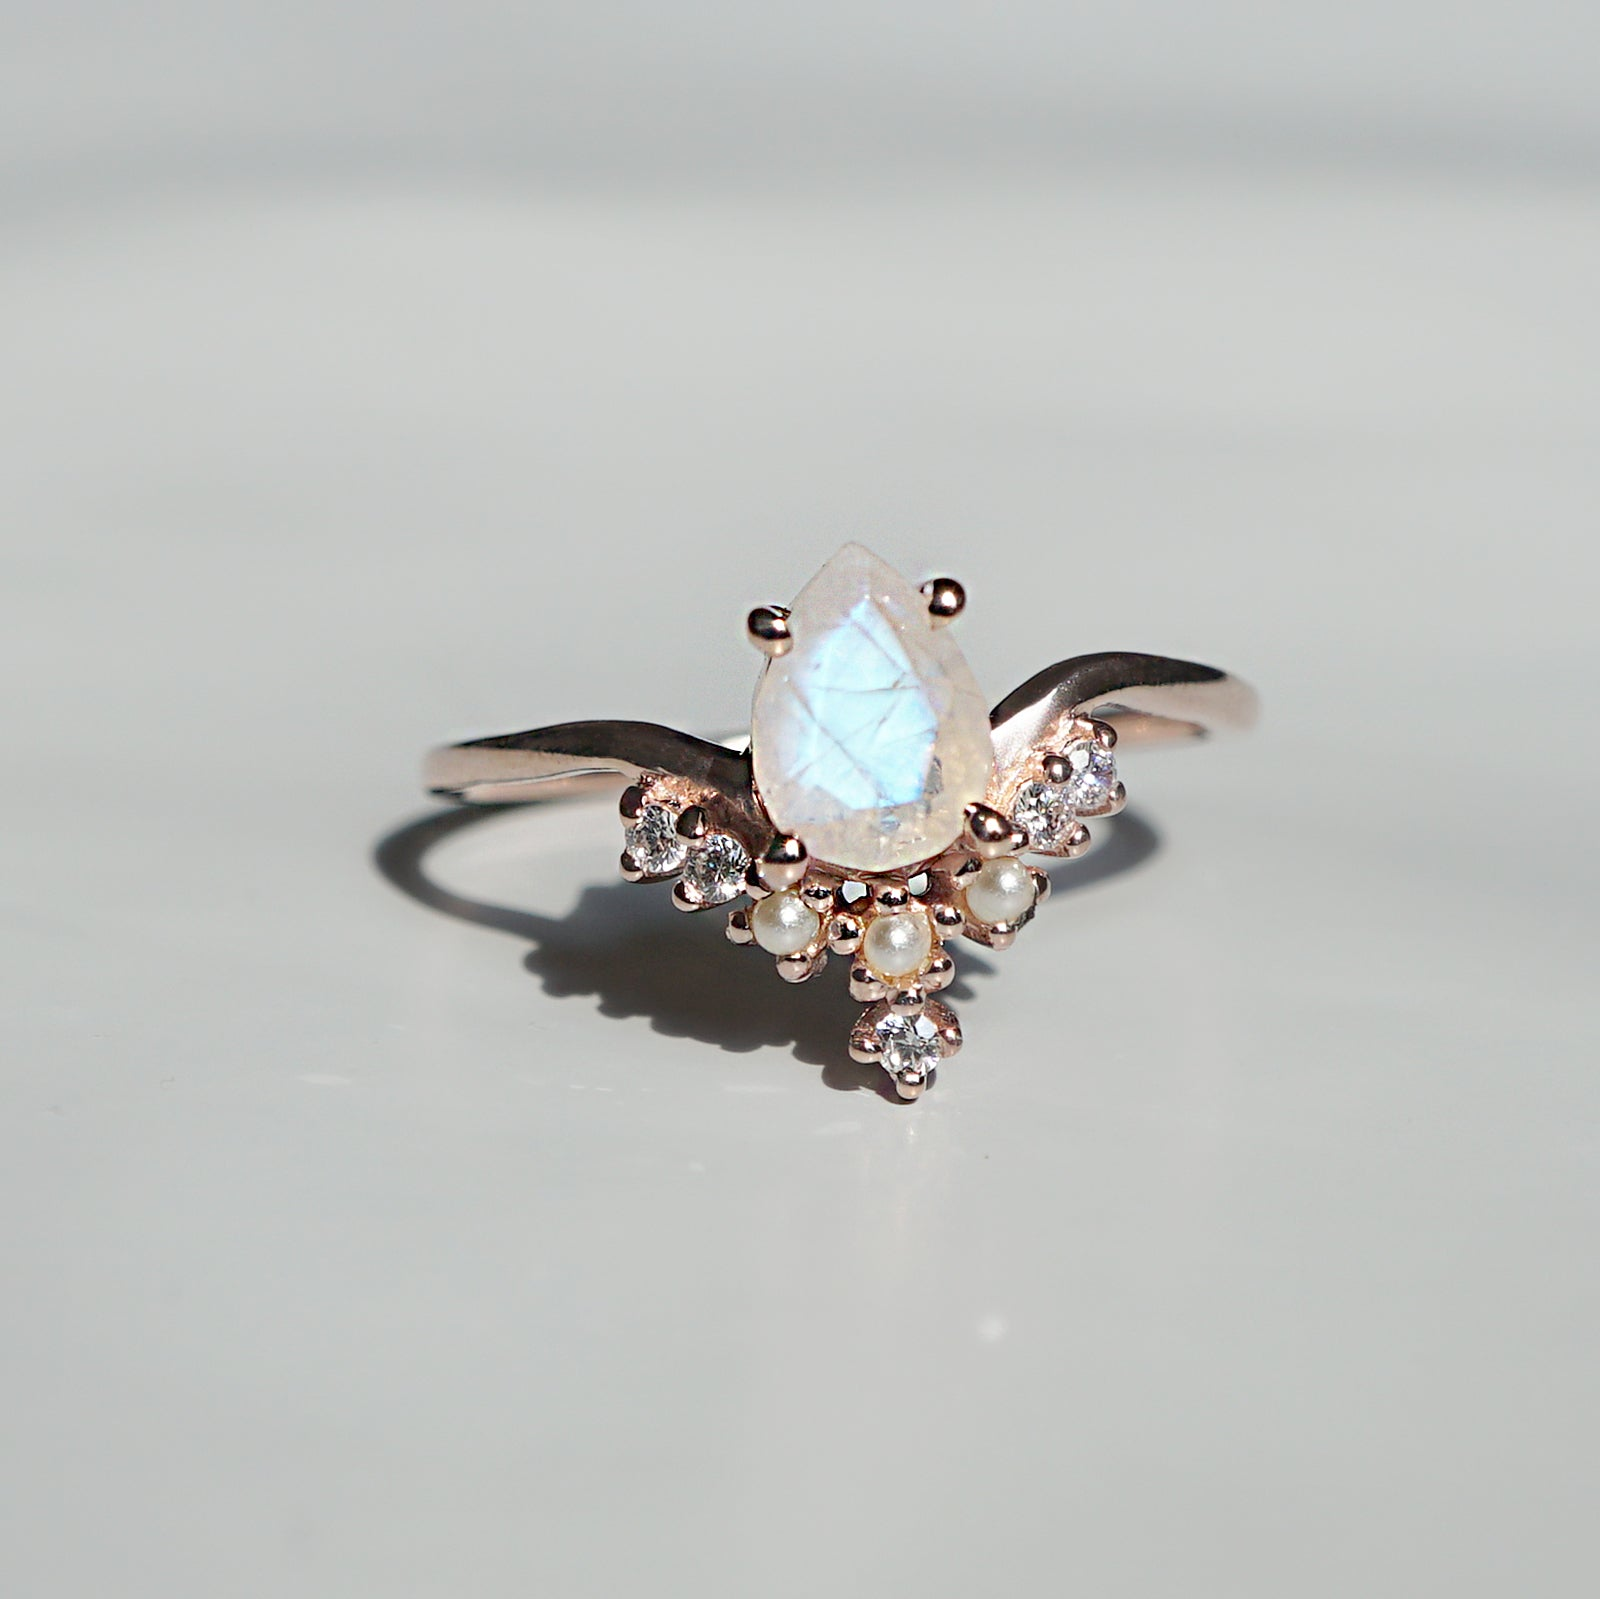 Celestial Moonstone Pearl Ring - Tippy Taste Jewelry